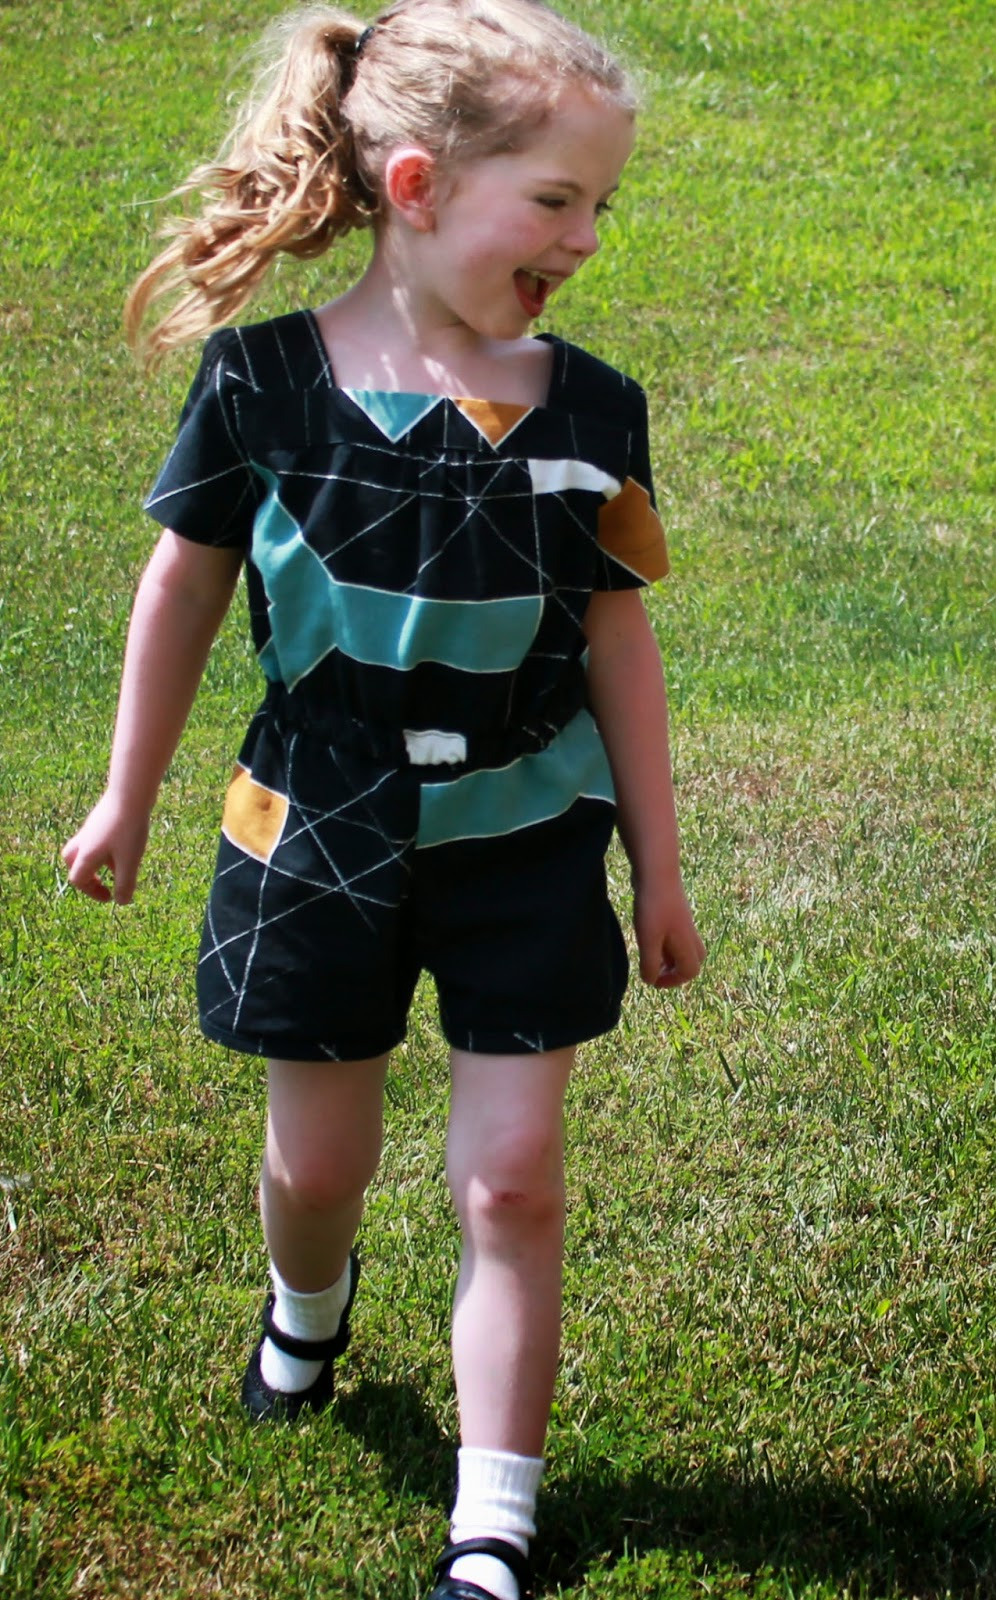 Sewing an Oliver+S Croquet Dress Flipped (or rather made into a Mash-Up with Puppet Show Shorts) into a Romper | The Inspired Wren